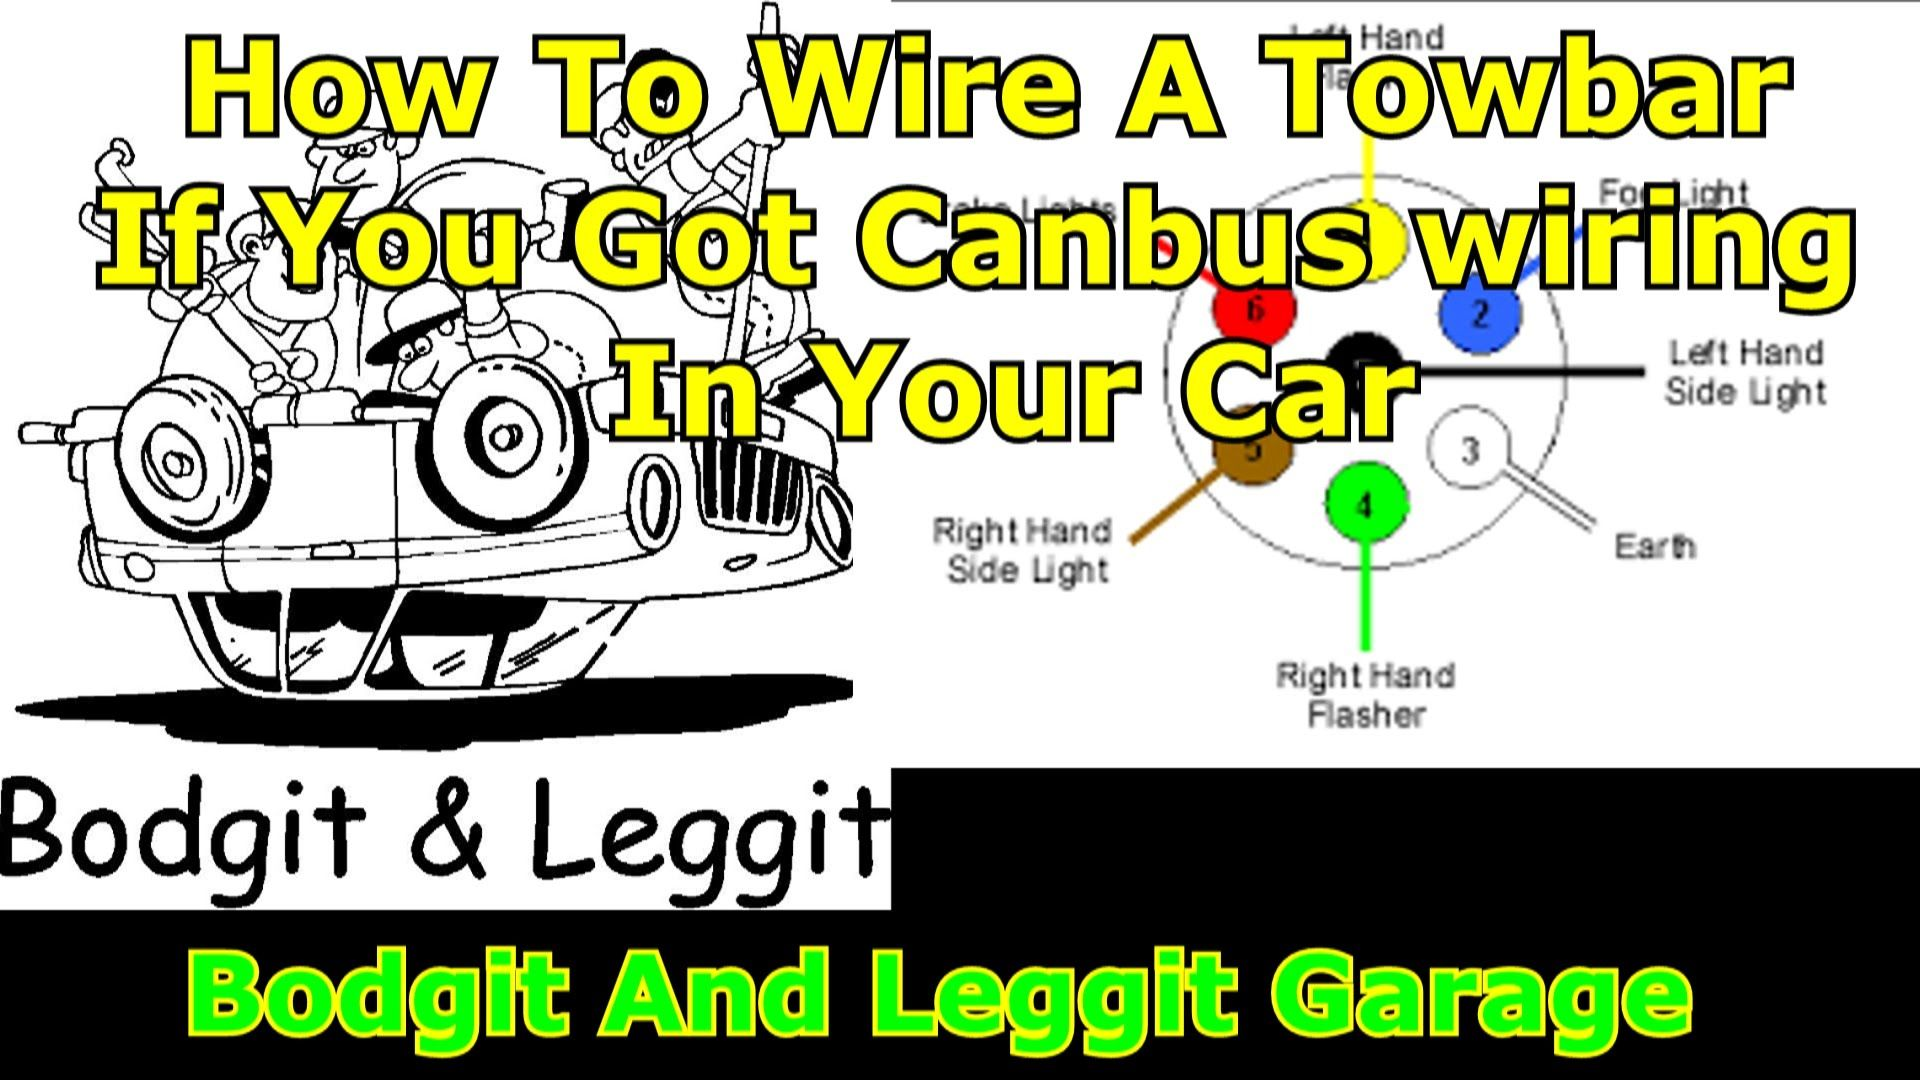 how to wire a towbar with canbus box part 2 bodgit and leggit garage